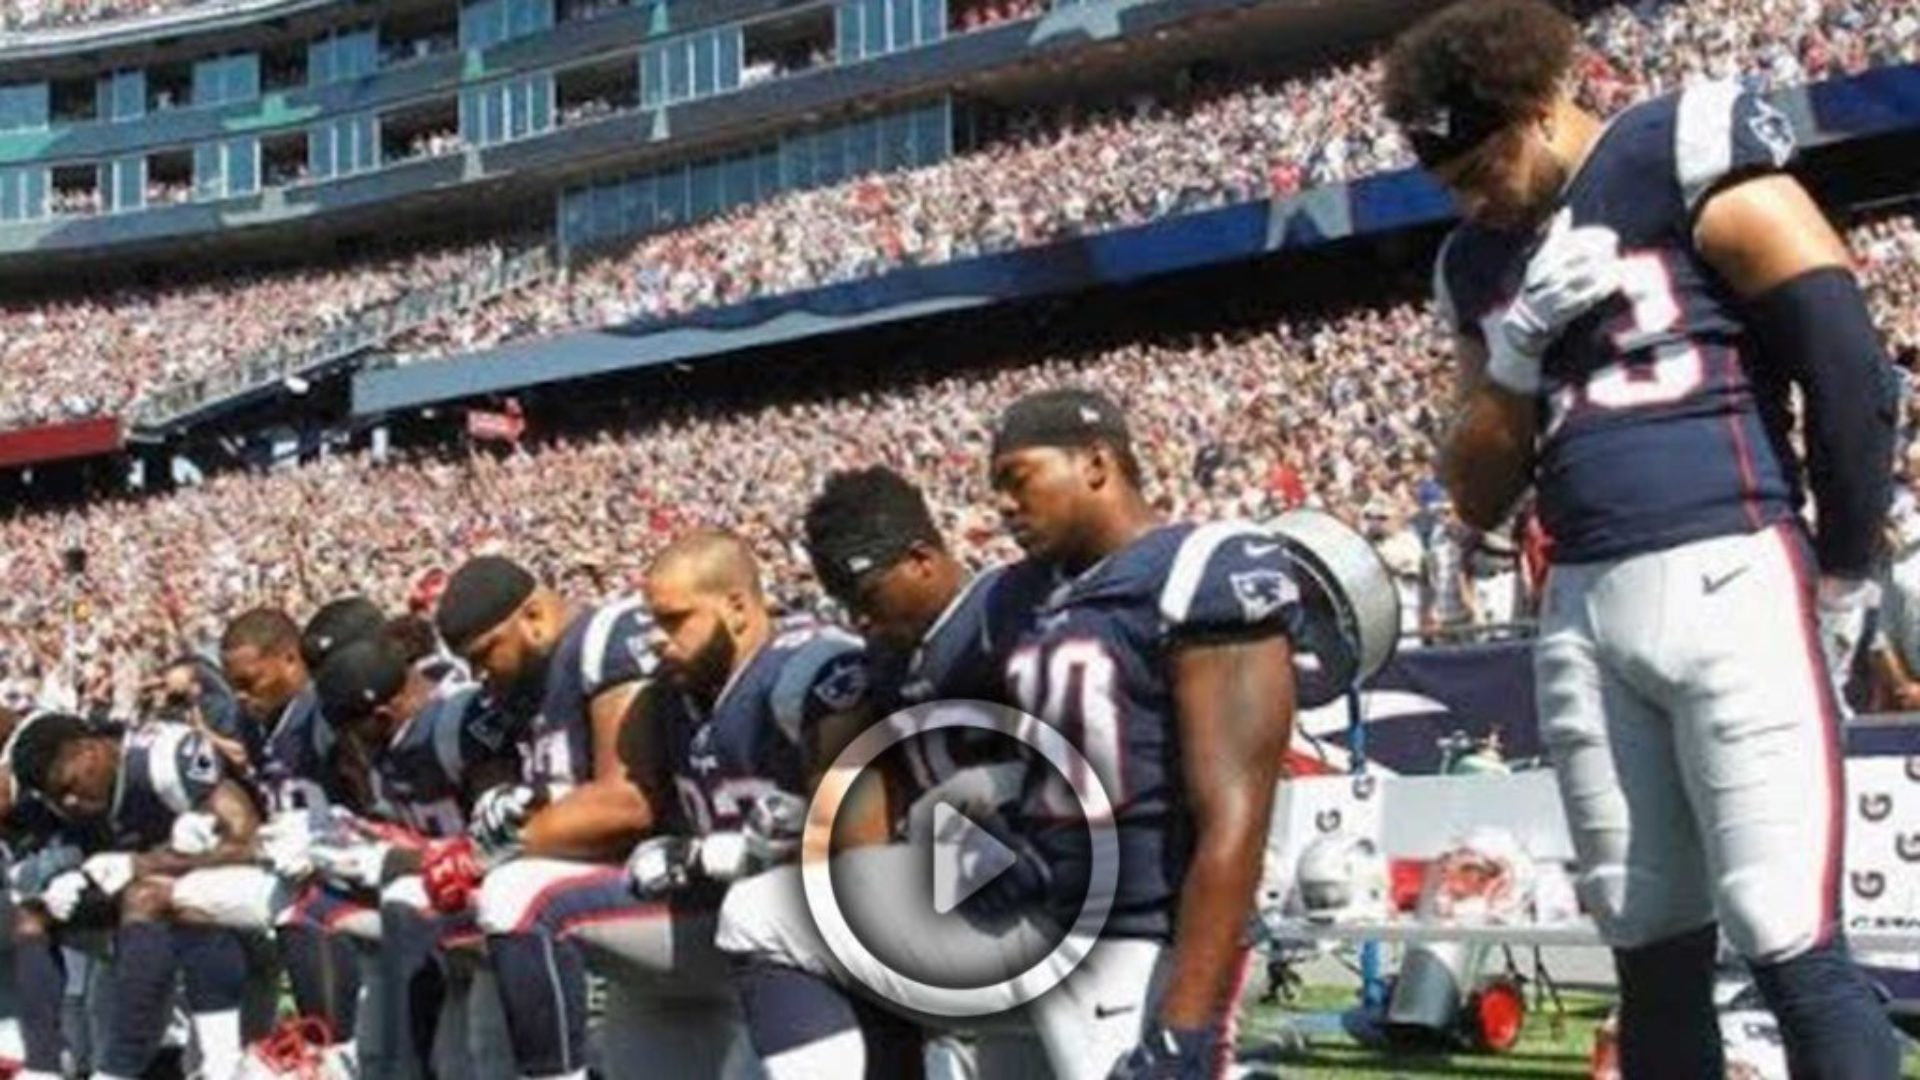 NFL-Players-Disrespecting-Our-Flag-And-Country-2